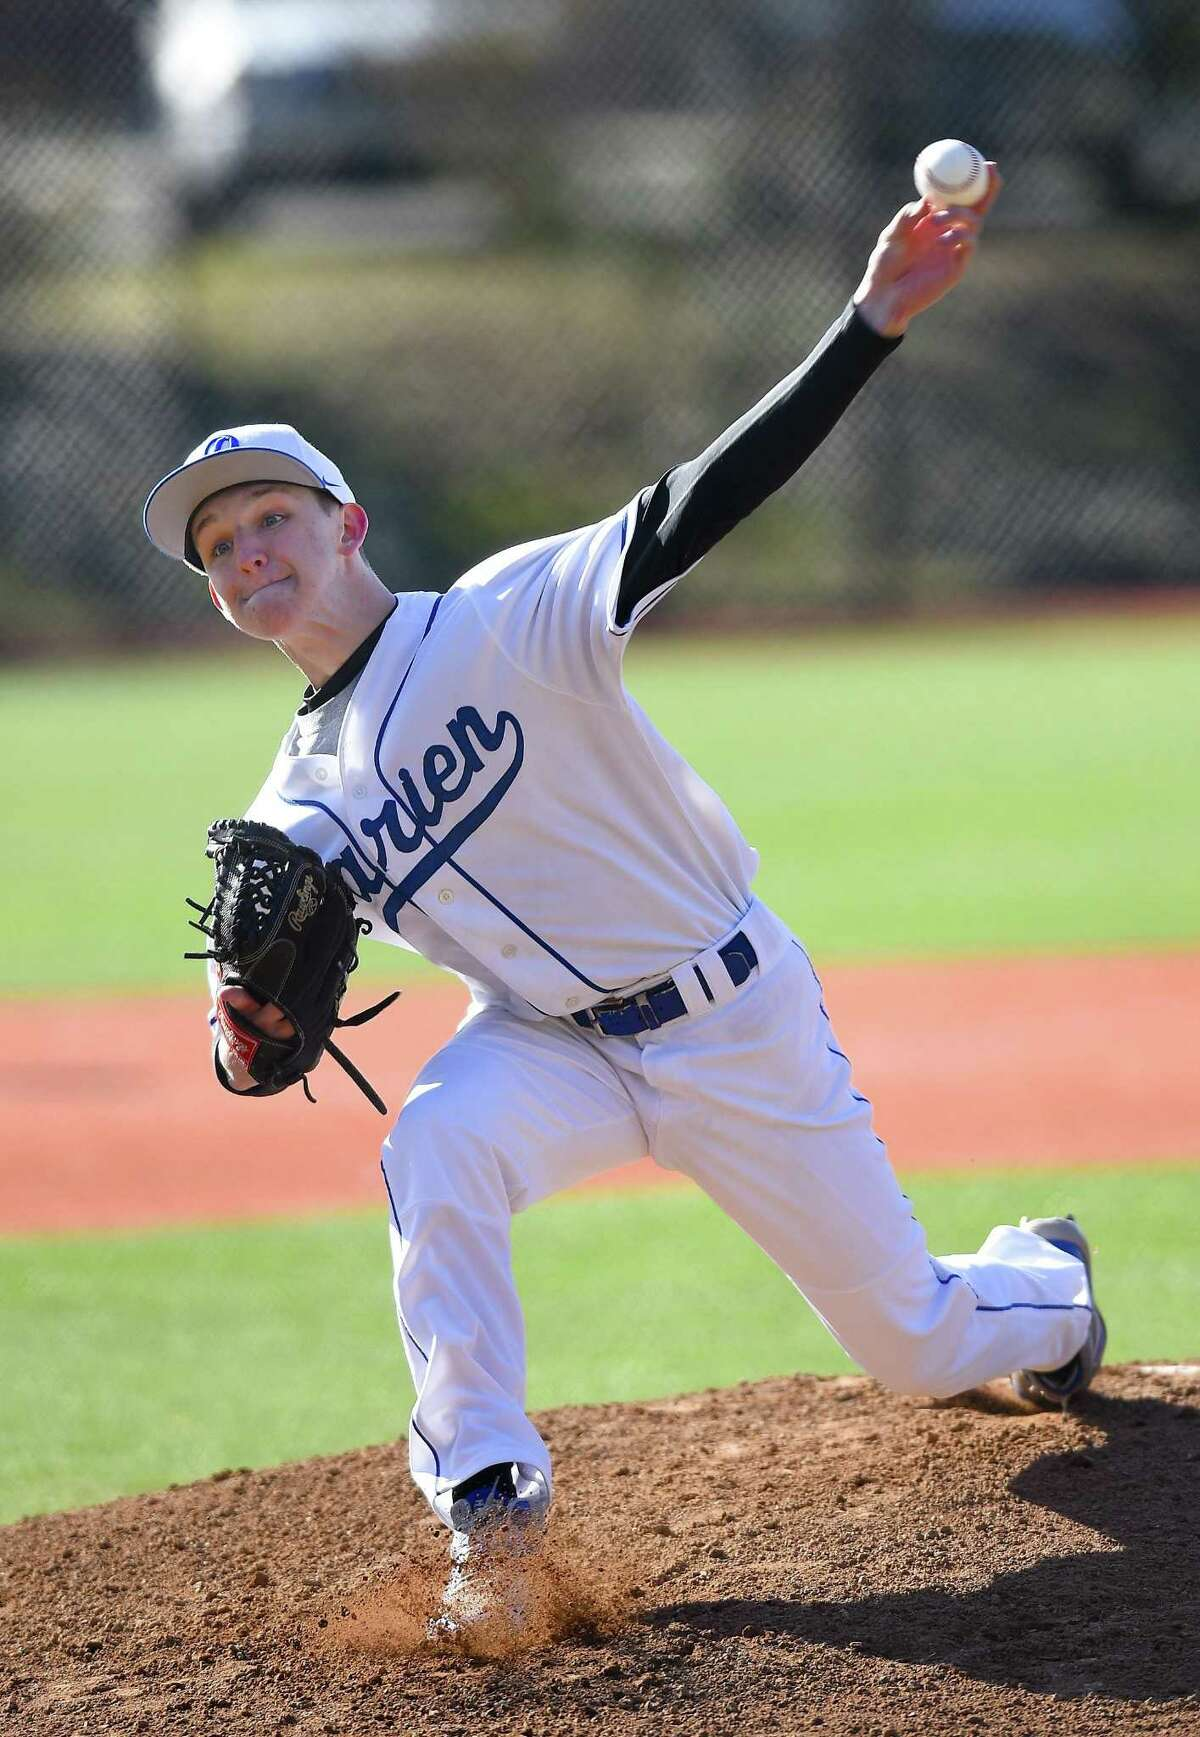 Darien's Justin Jordan struck out six and allowed just one hit in five innings as Darien blanked NFA 1-0 on Thursday.